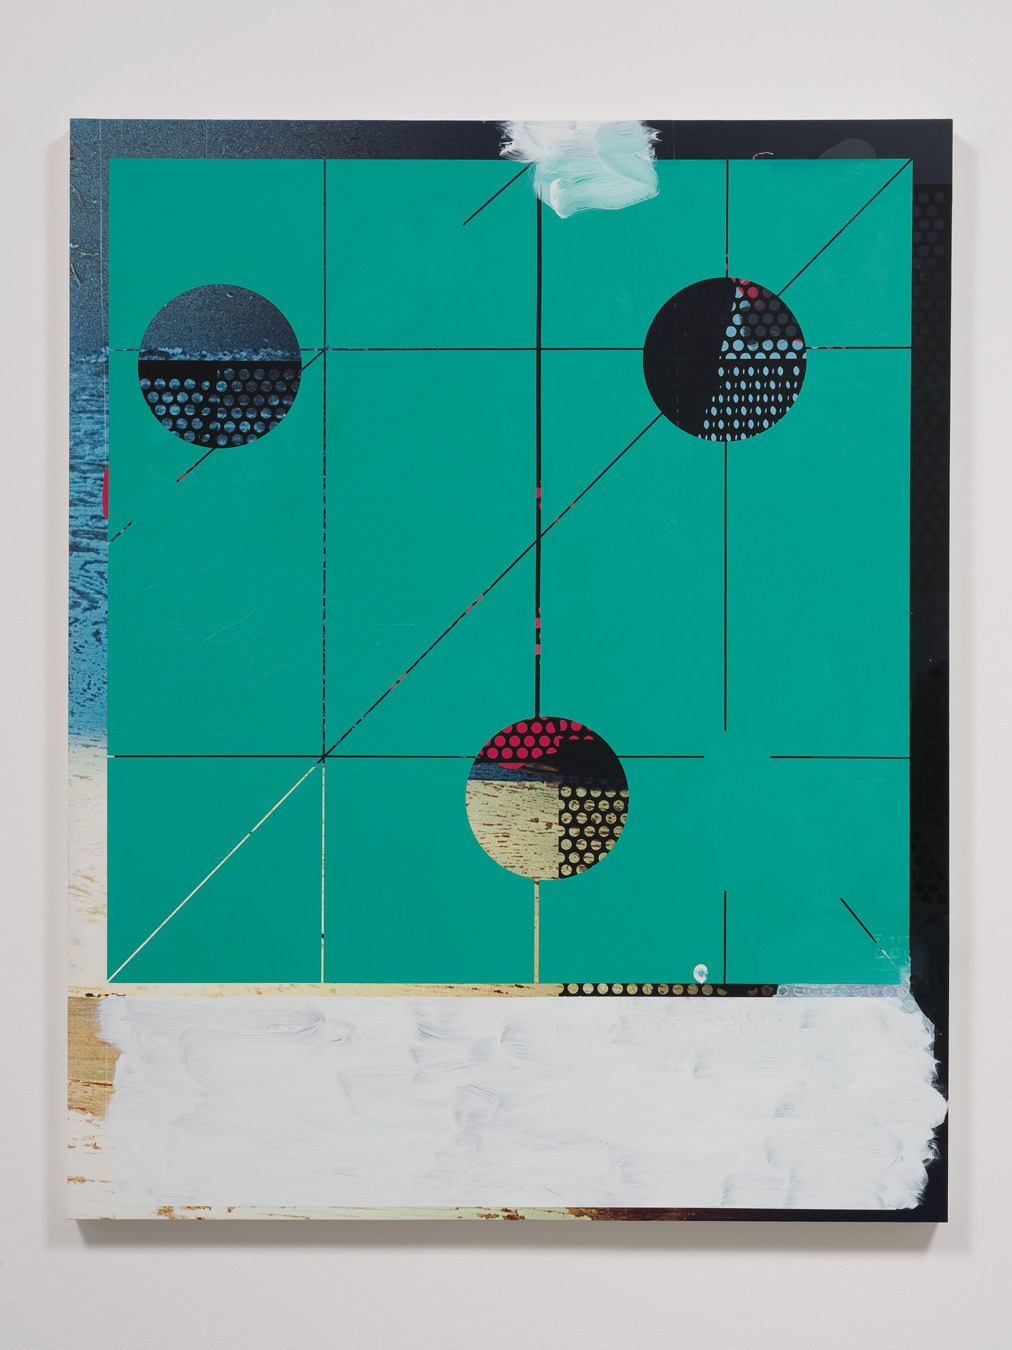 Salton Sea (wall), 2012  Acrylic, oil and UV cured ink on canvas over panel  60 x 48 inches  152.4 x 121.92 cm